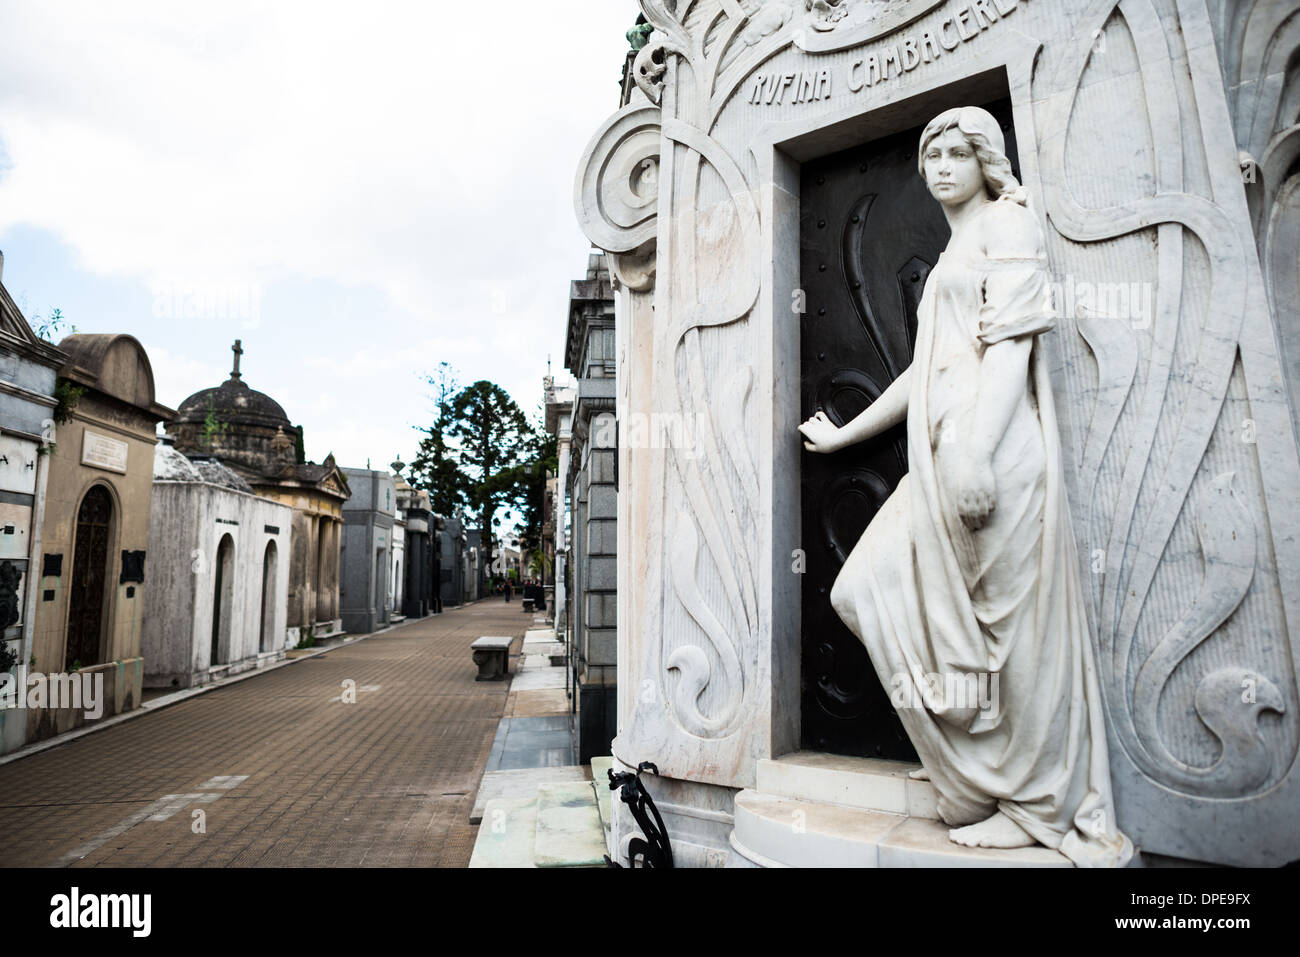 BUENOS AIRES, Argentina - La Recoleta Cemetery is a famous cemetery in the Recoleta neighborhood of Buenos Aires and is famous for being the burial sites of Eva Peron, Argentinian presidents, and other notables. The cemetery features above-ground gravesites and crypts and is organized into a series of streets and boulevards. - Stock Image